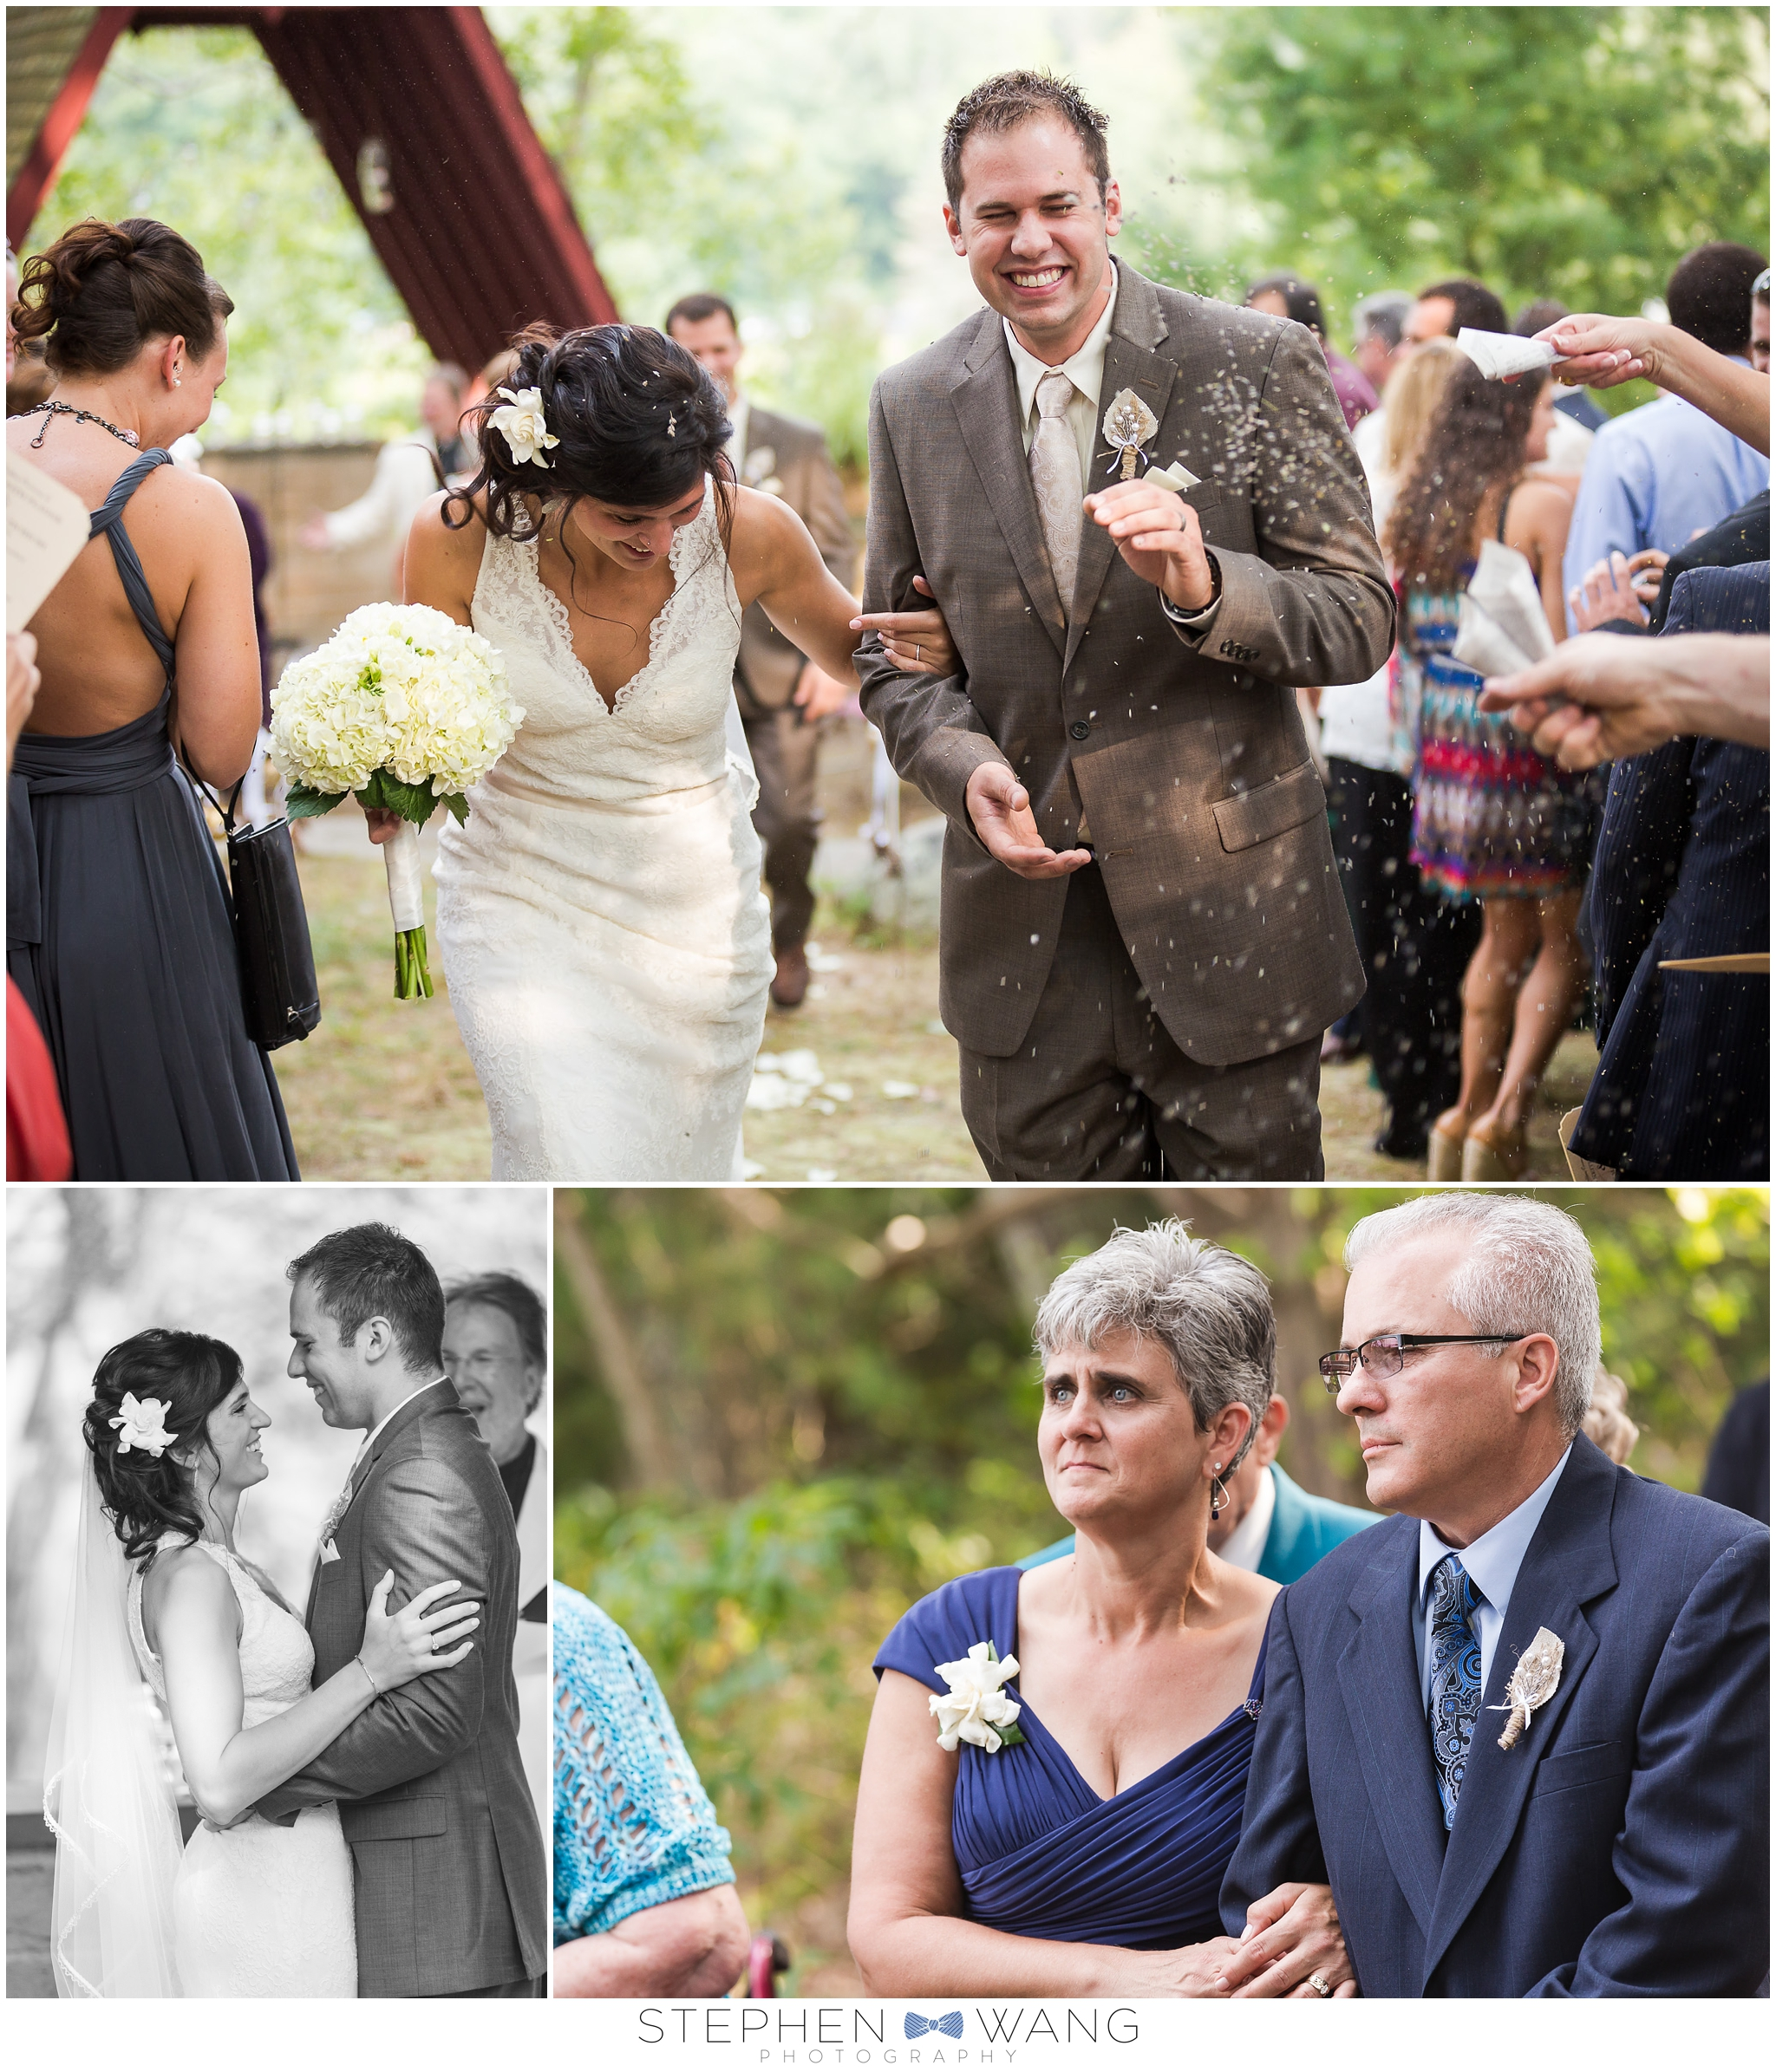 Deer lake camp forest wedding stephen wang photography connecticut outdoors woods wedding nature summer_0010.jpg